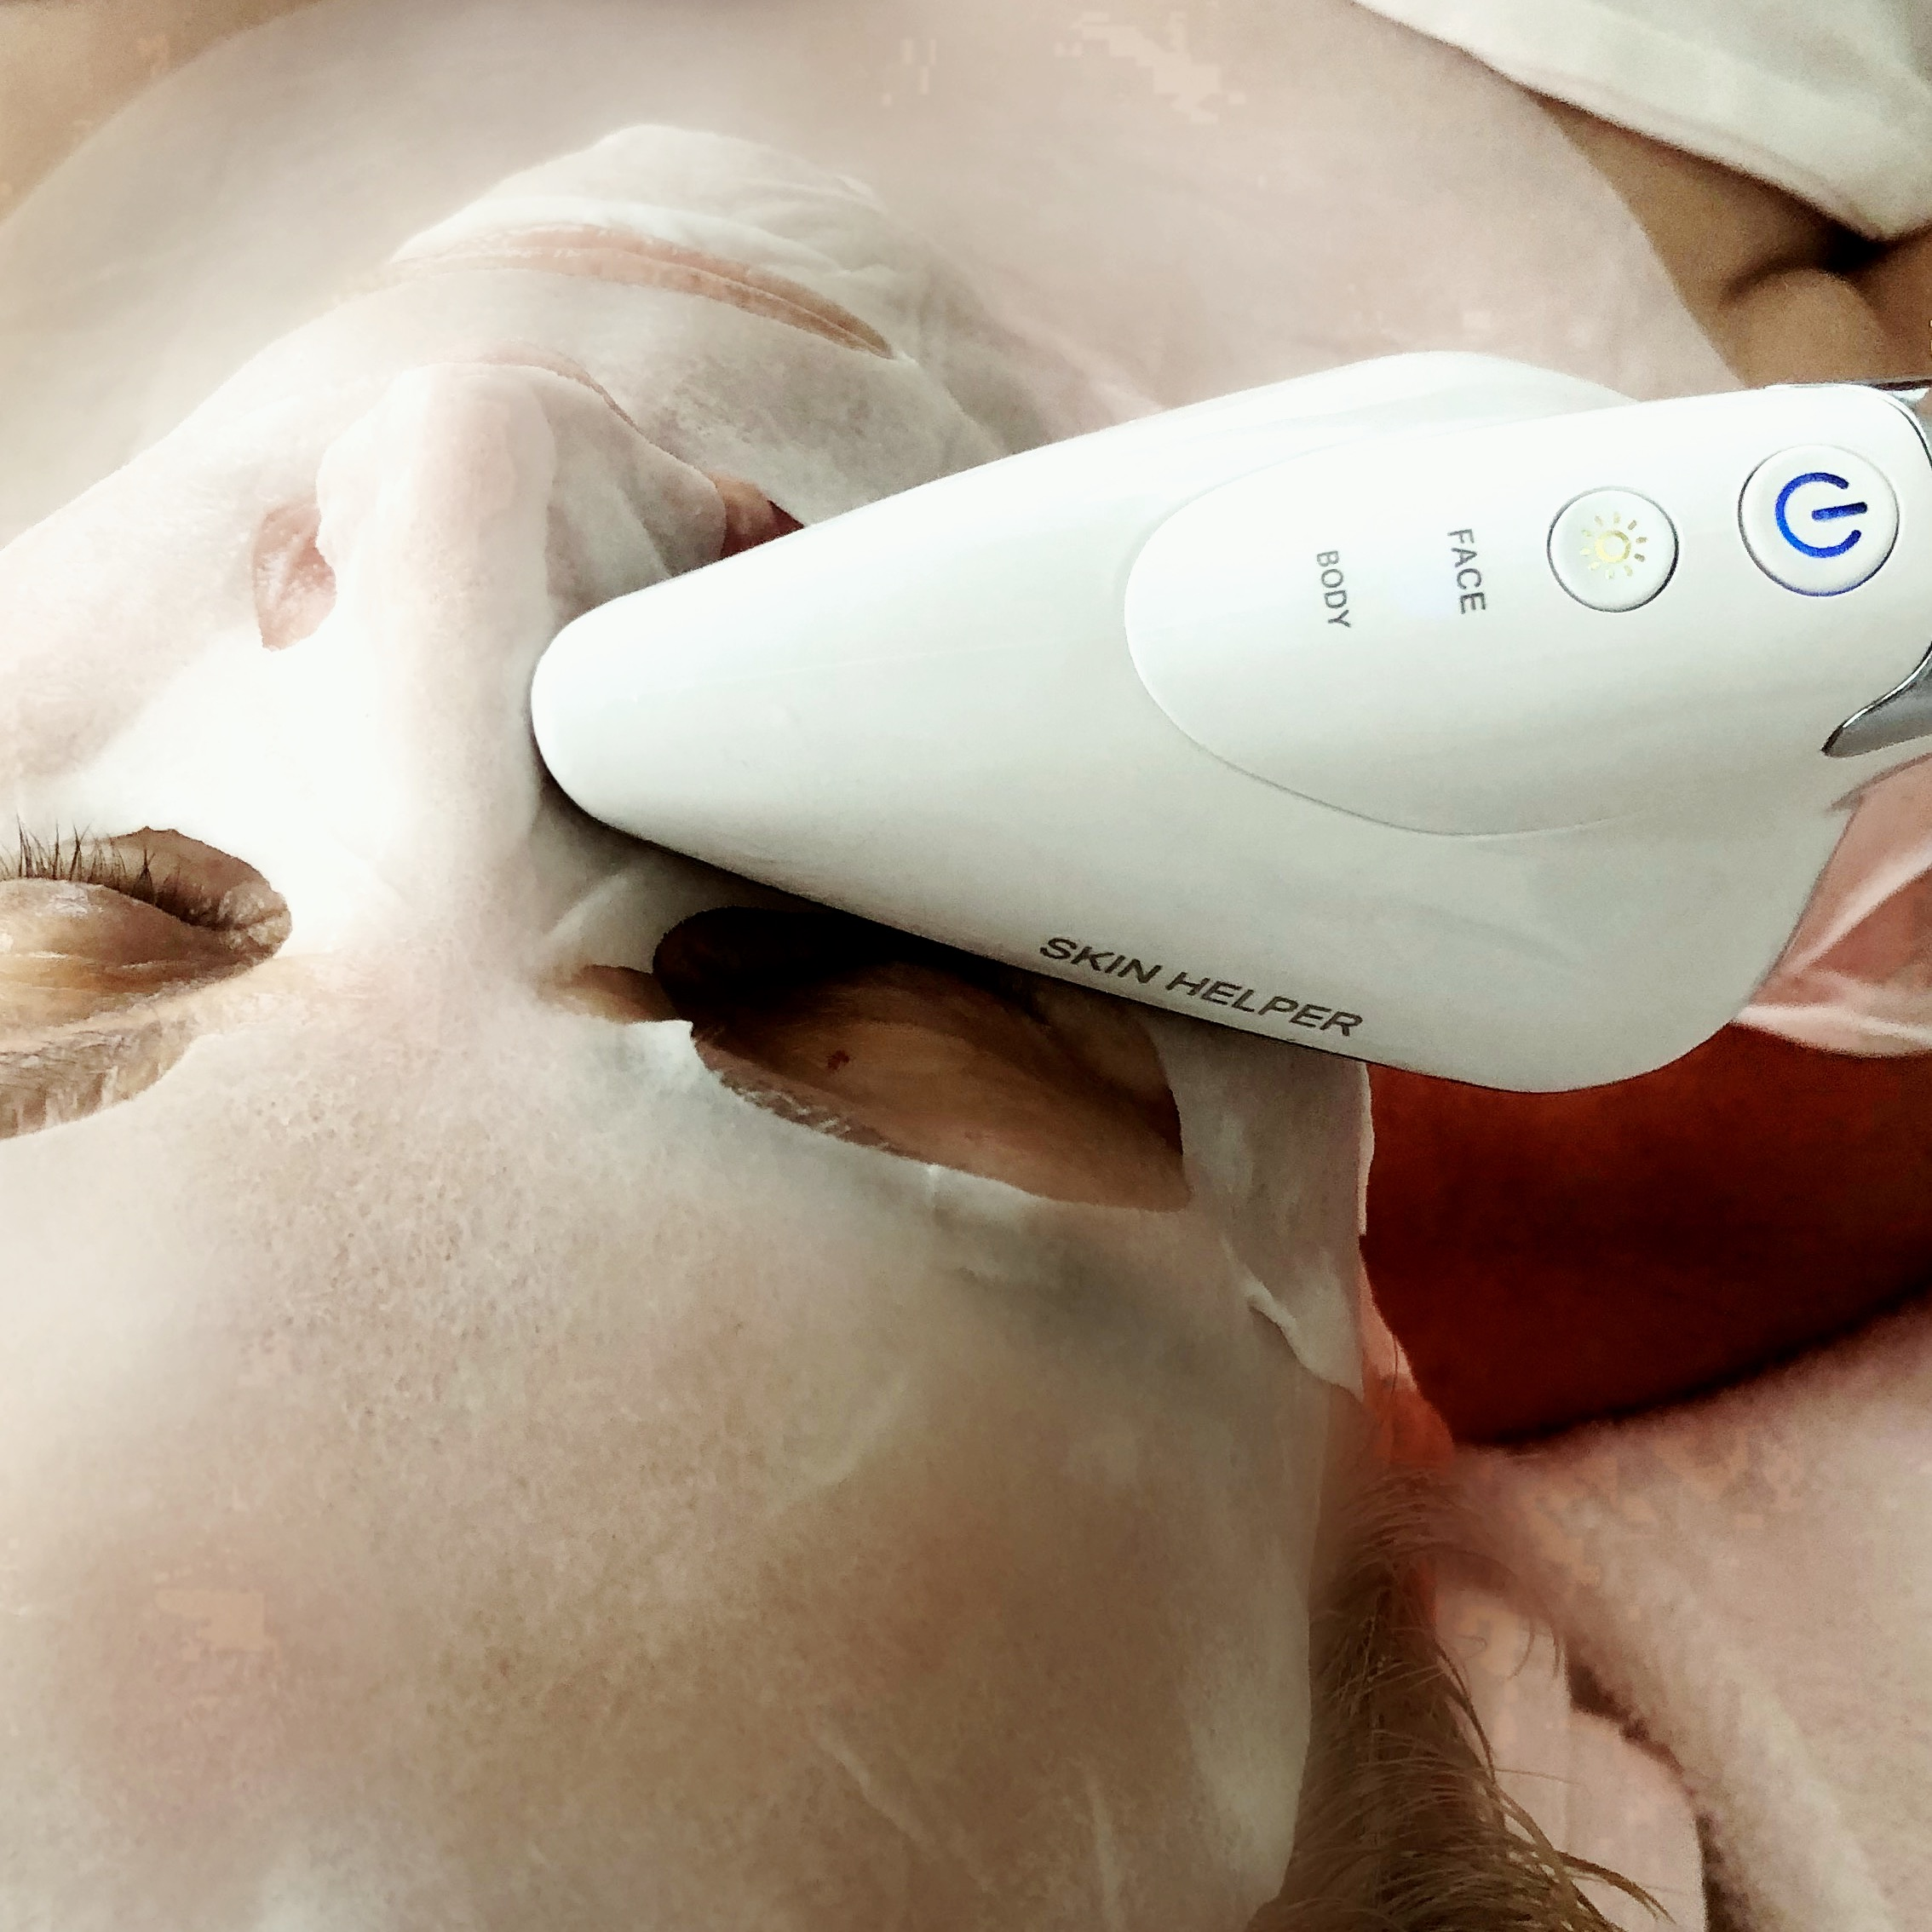 ADVANCED CARE - Insert copy here about advanced skin care services that you provide.